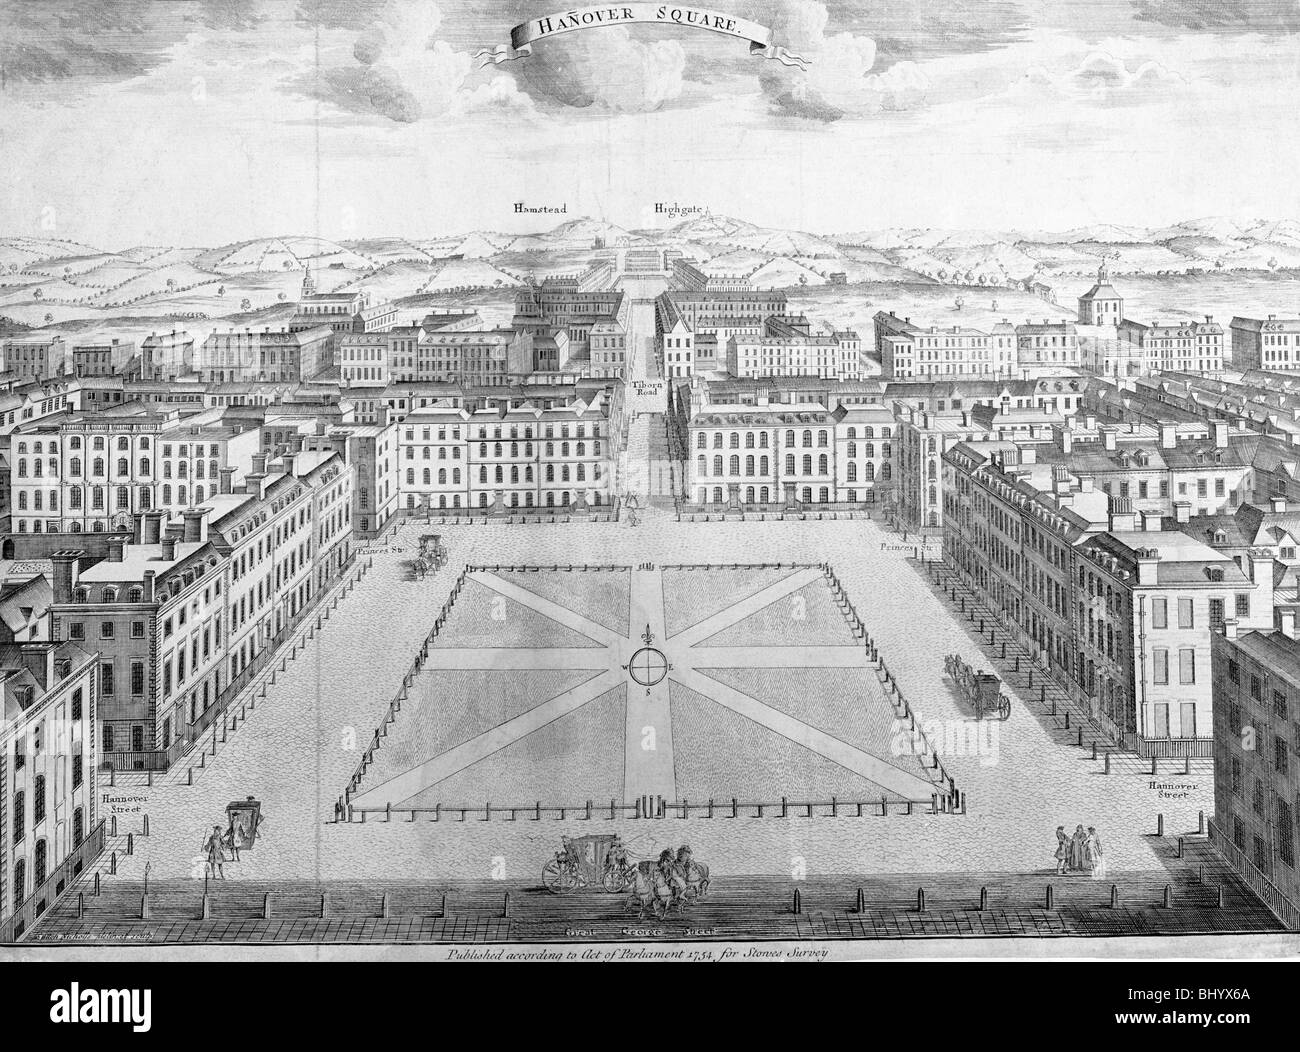 Hanover Square, Westminster, London, early 18th century. Artist: Sutton Nicholls - Stock Image